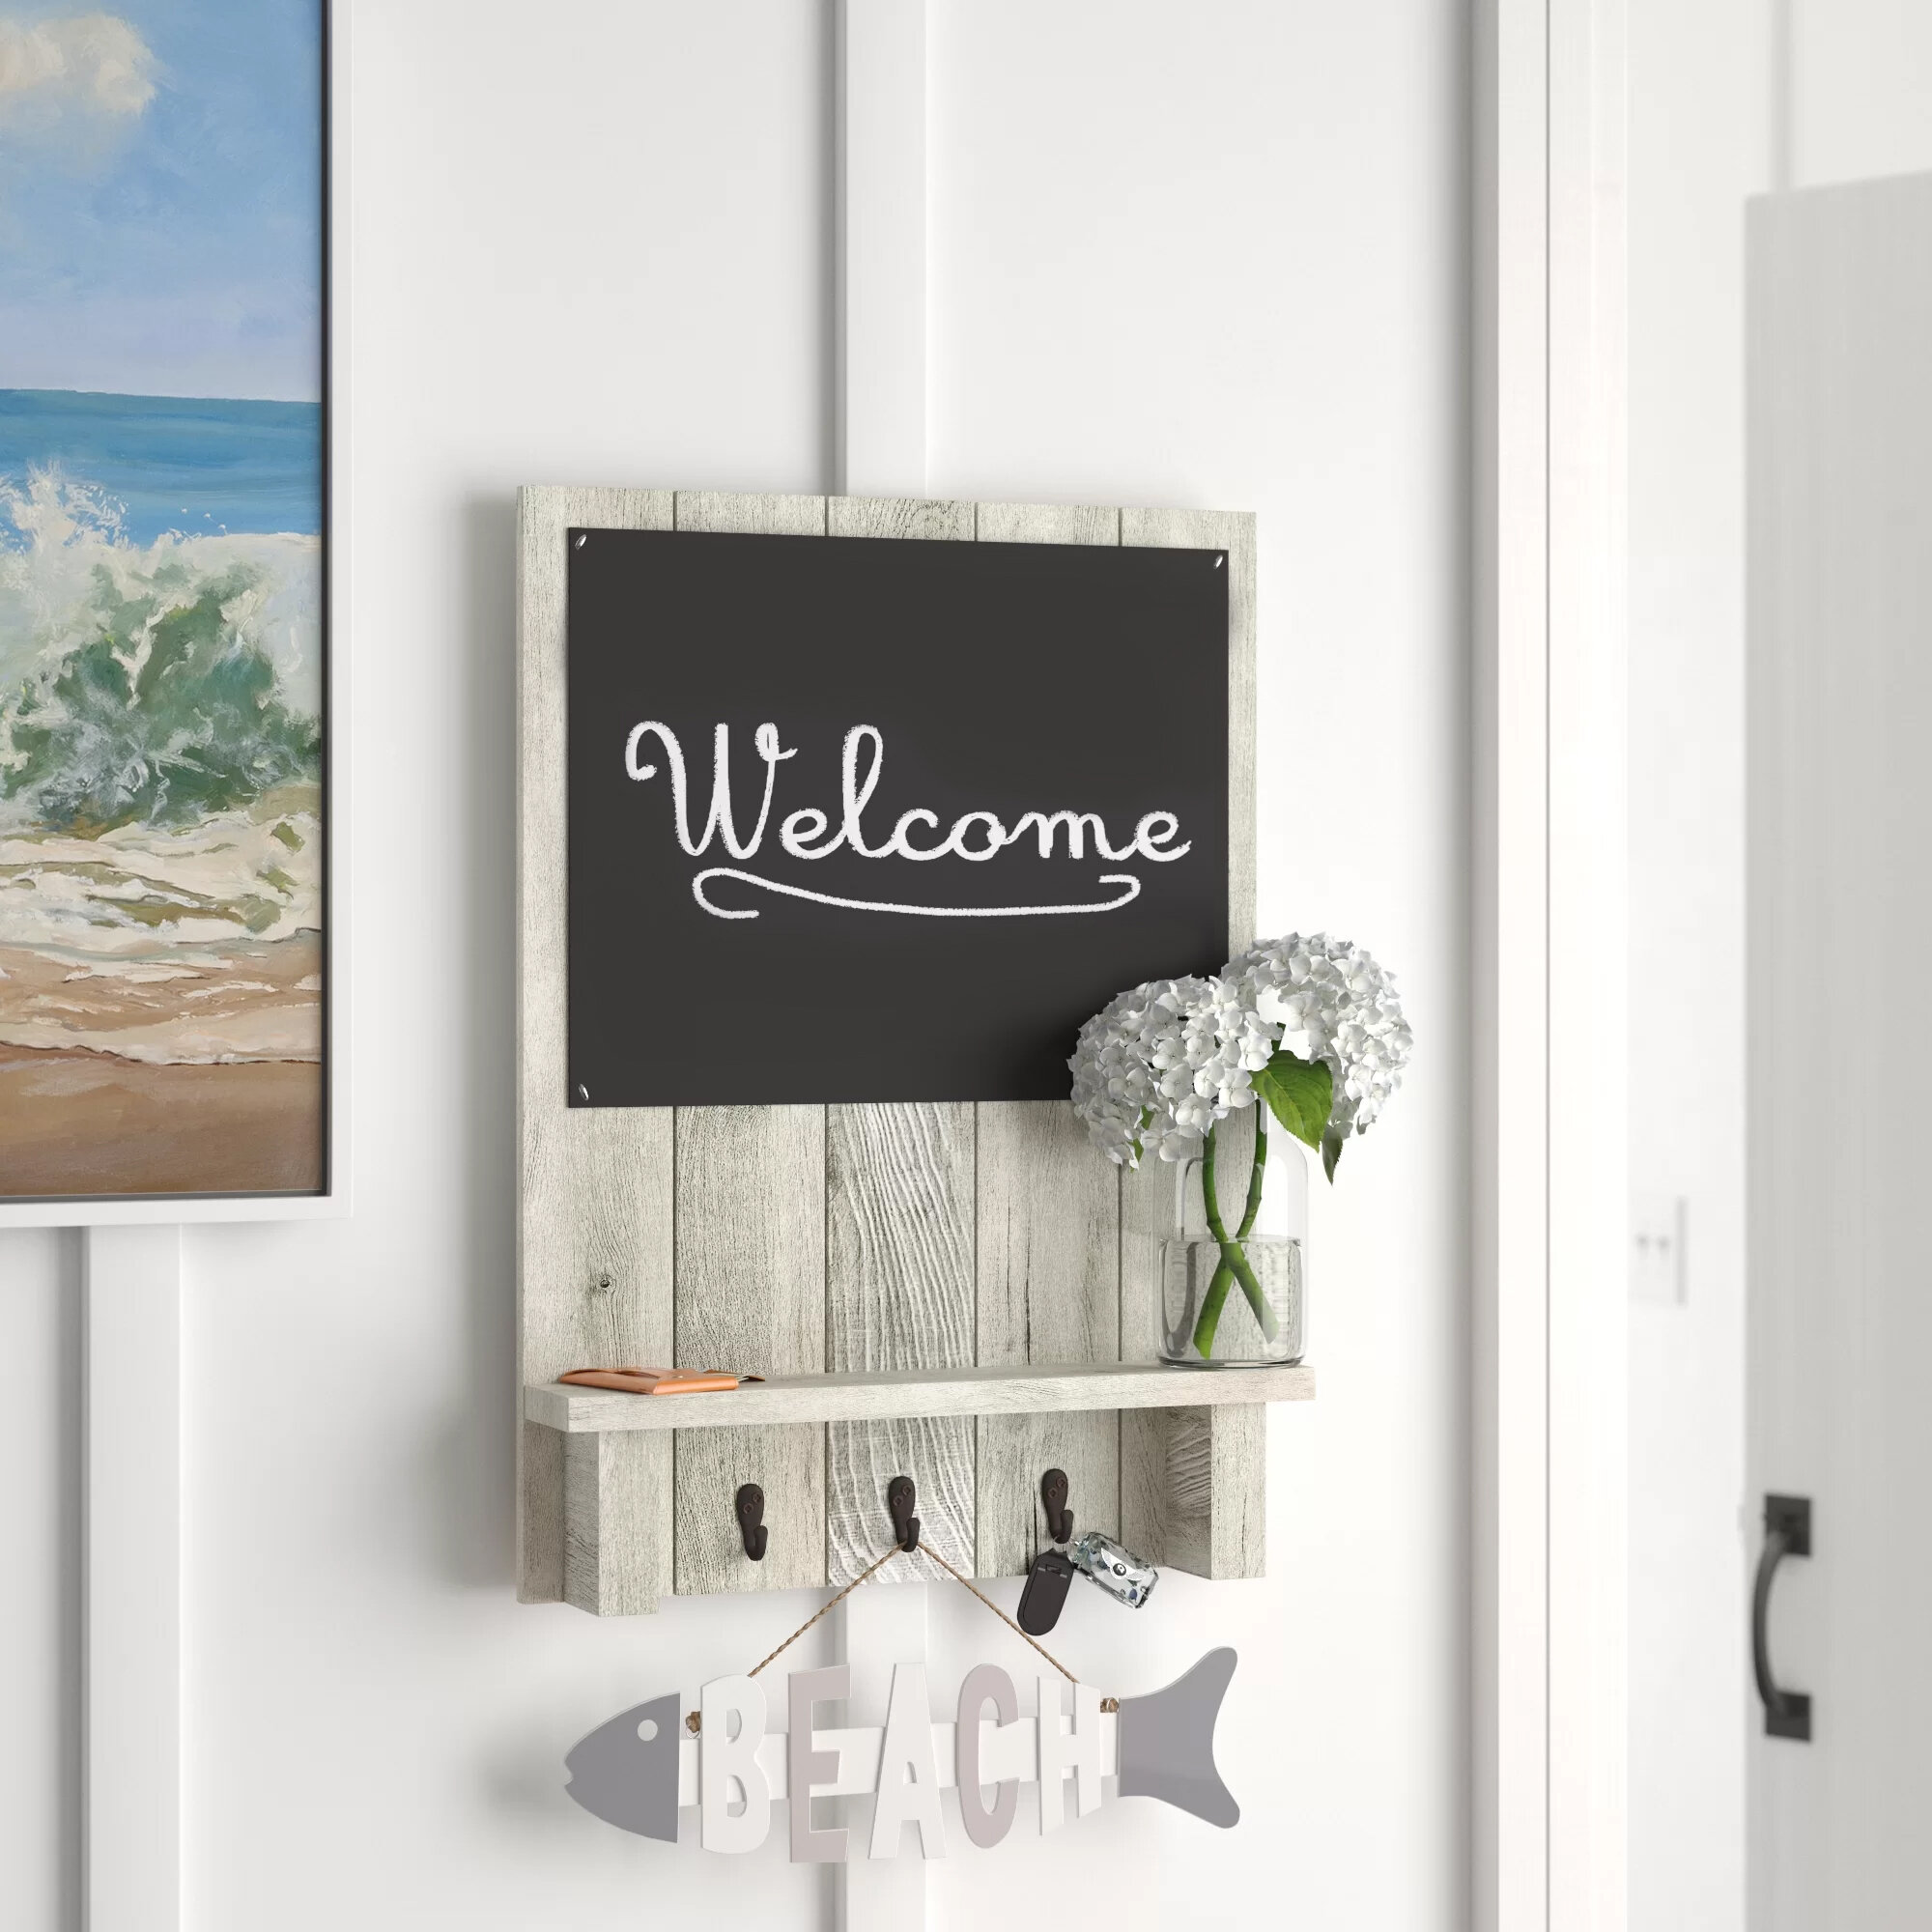 Wooden Sweet Home Theme Wall Mountain Key Holder 6 Hooks Oragniser Wall Hanging